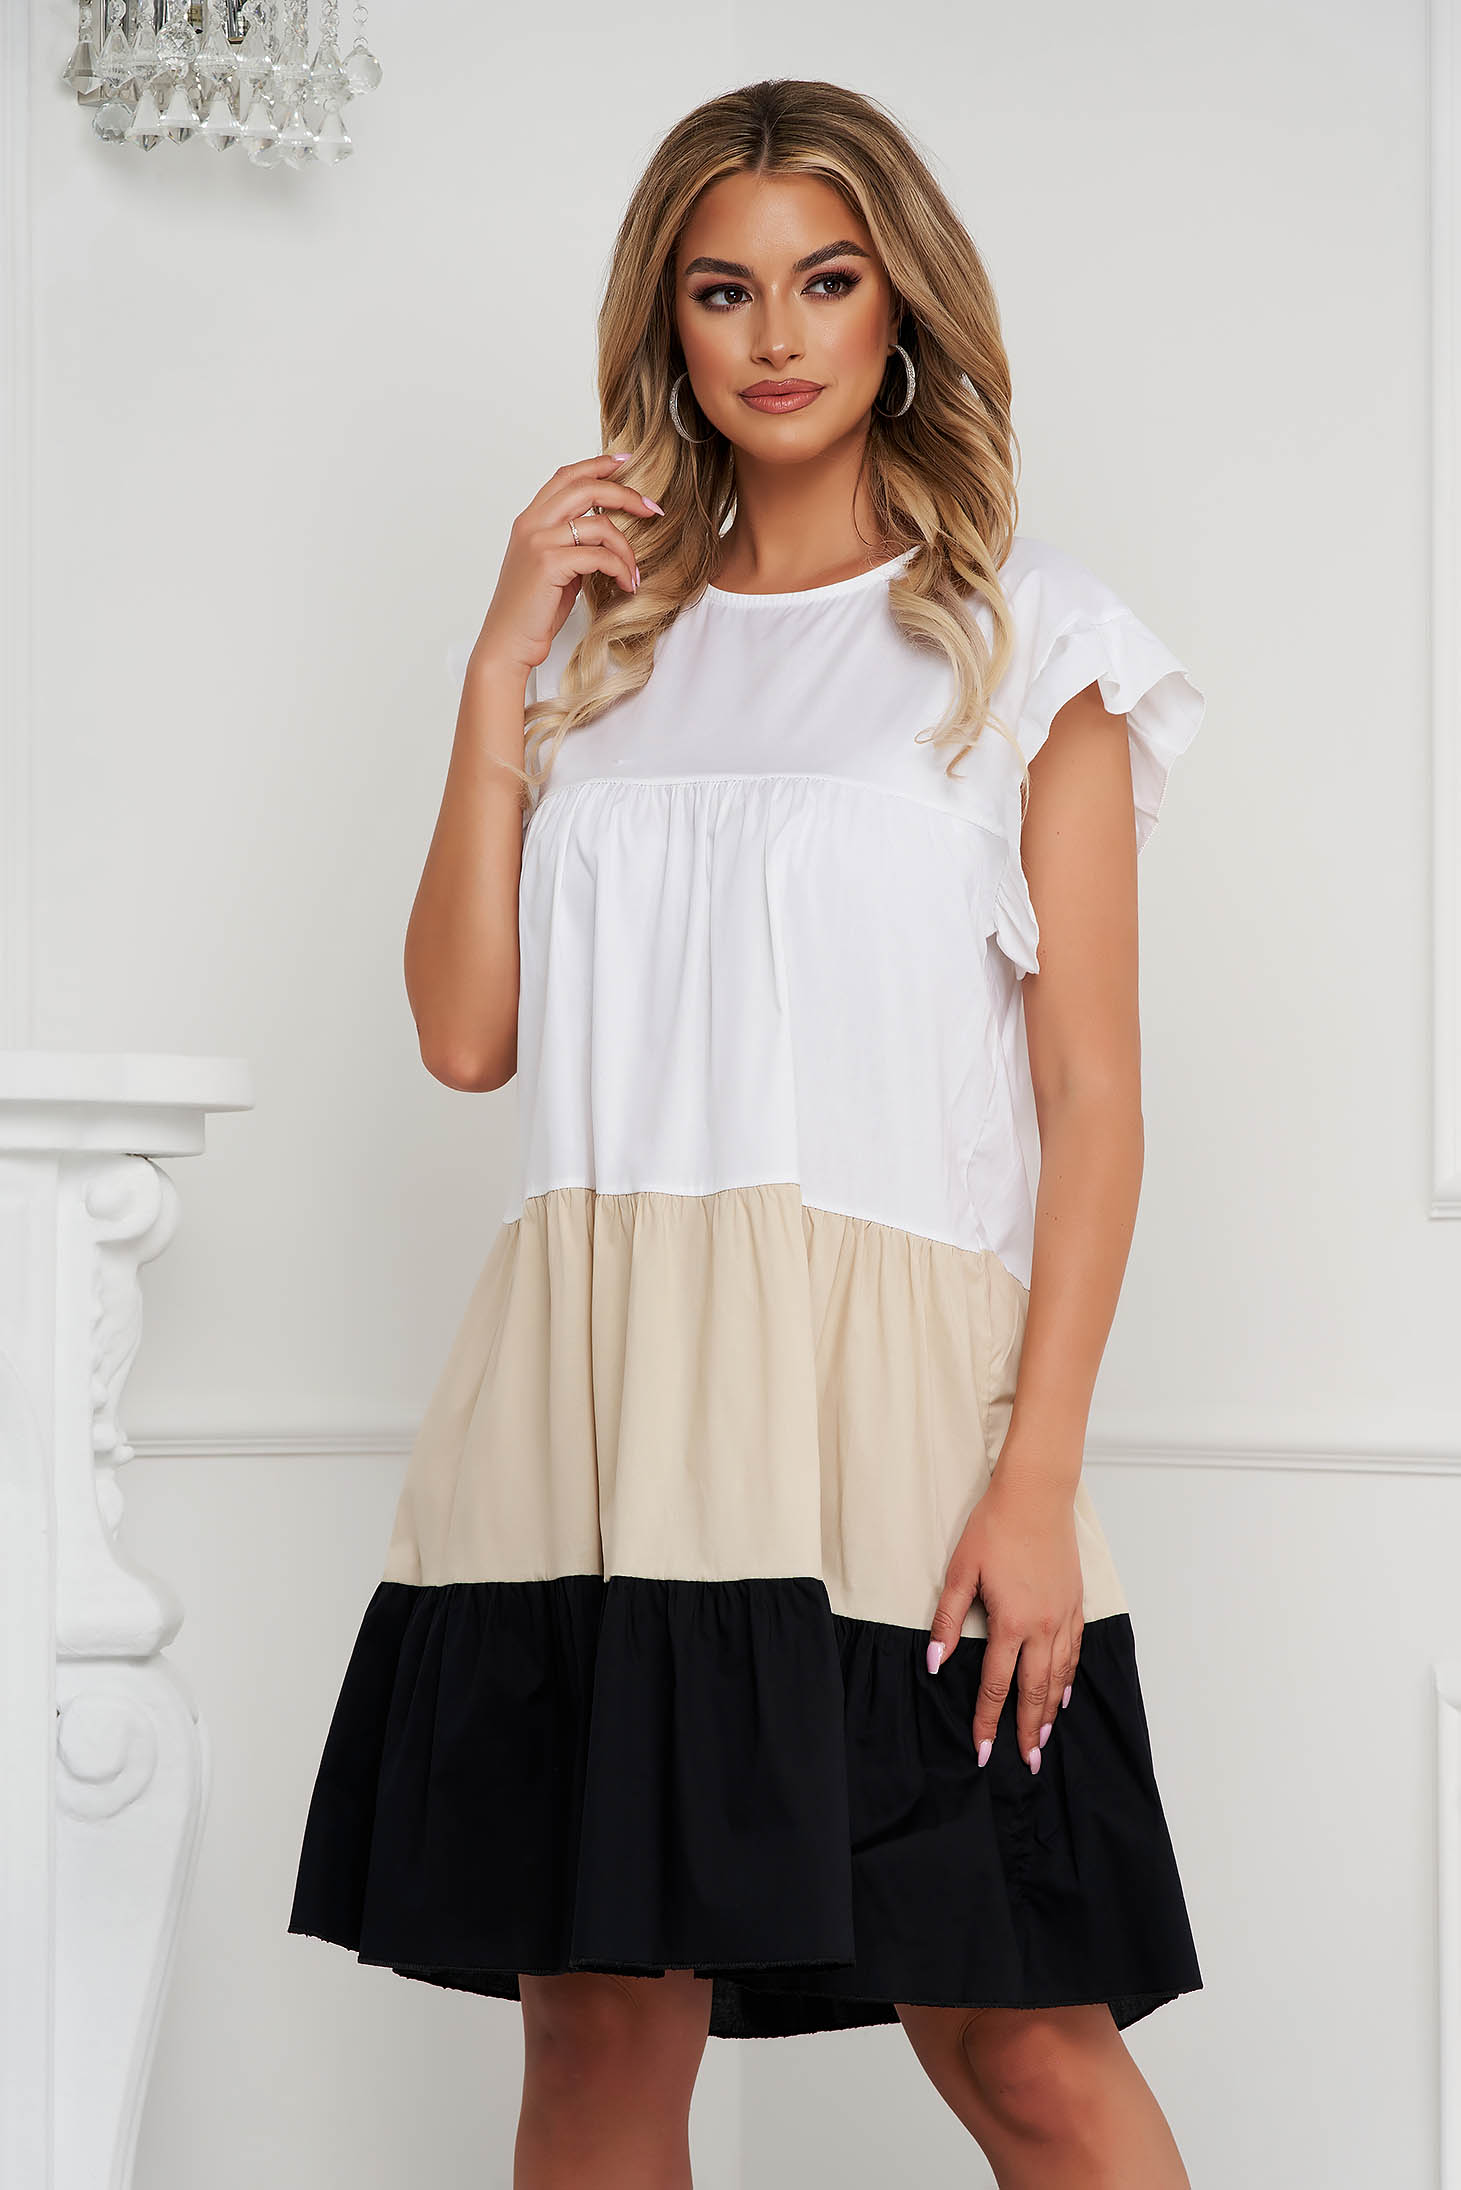 Cream dress thin fabric loose fit midi with ruffle details airy fabric